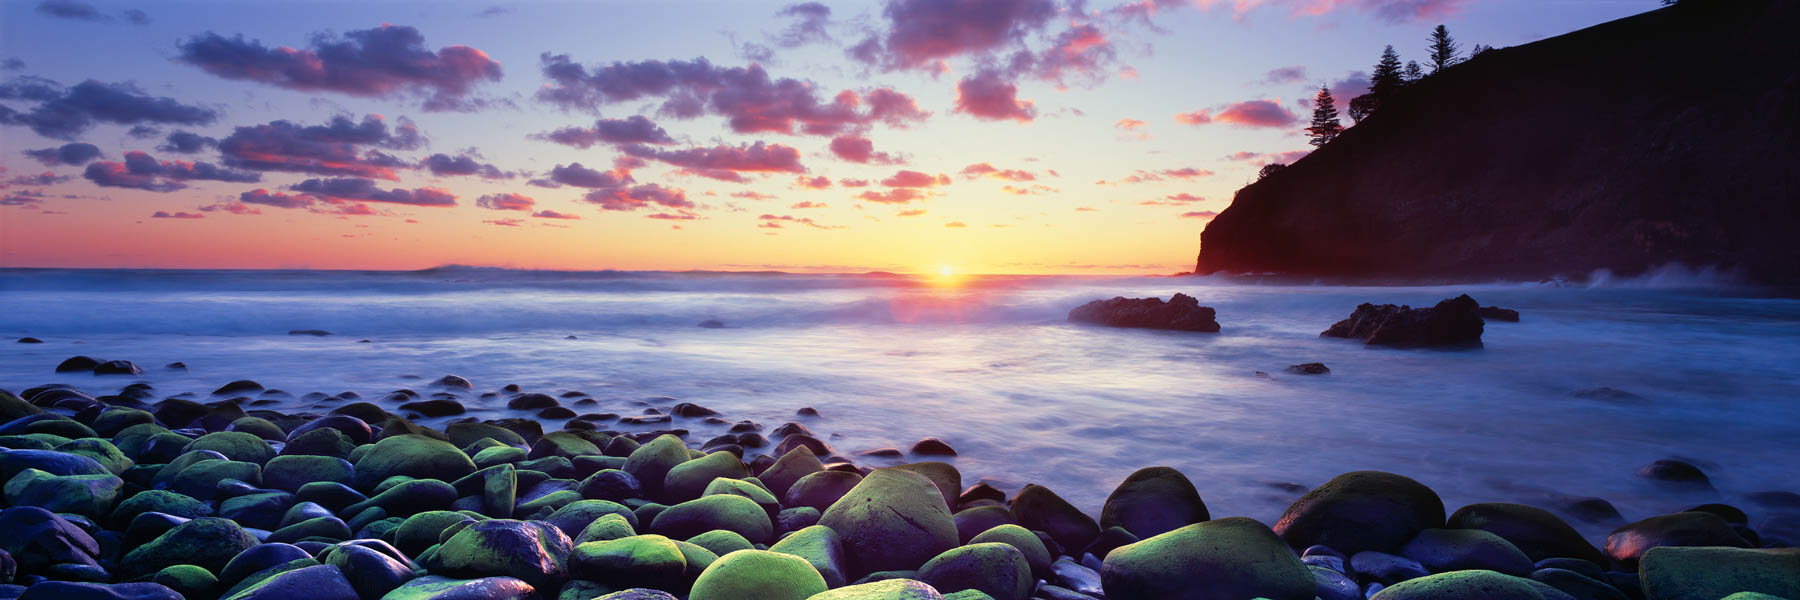 Sunset over soft waves and moss covered rocks in Anson Bay, Norfolk Island, Australia.